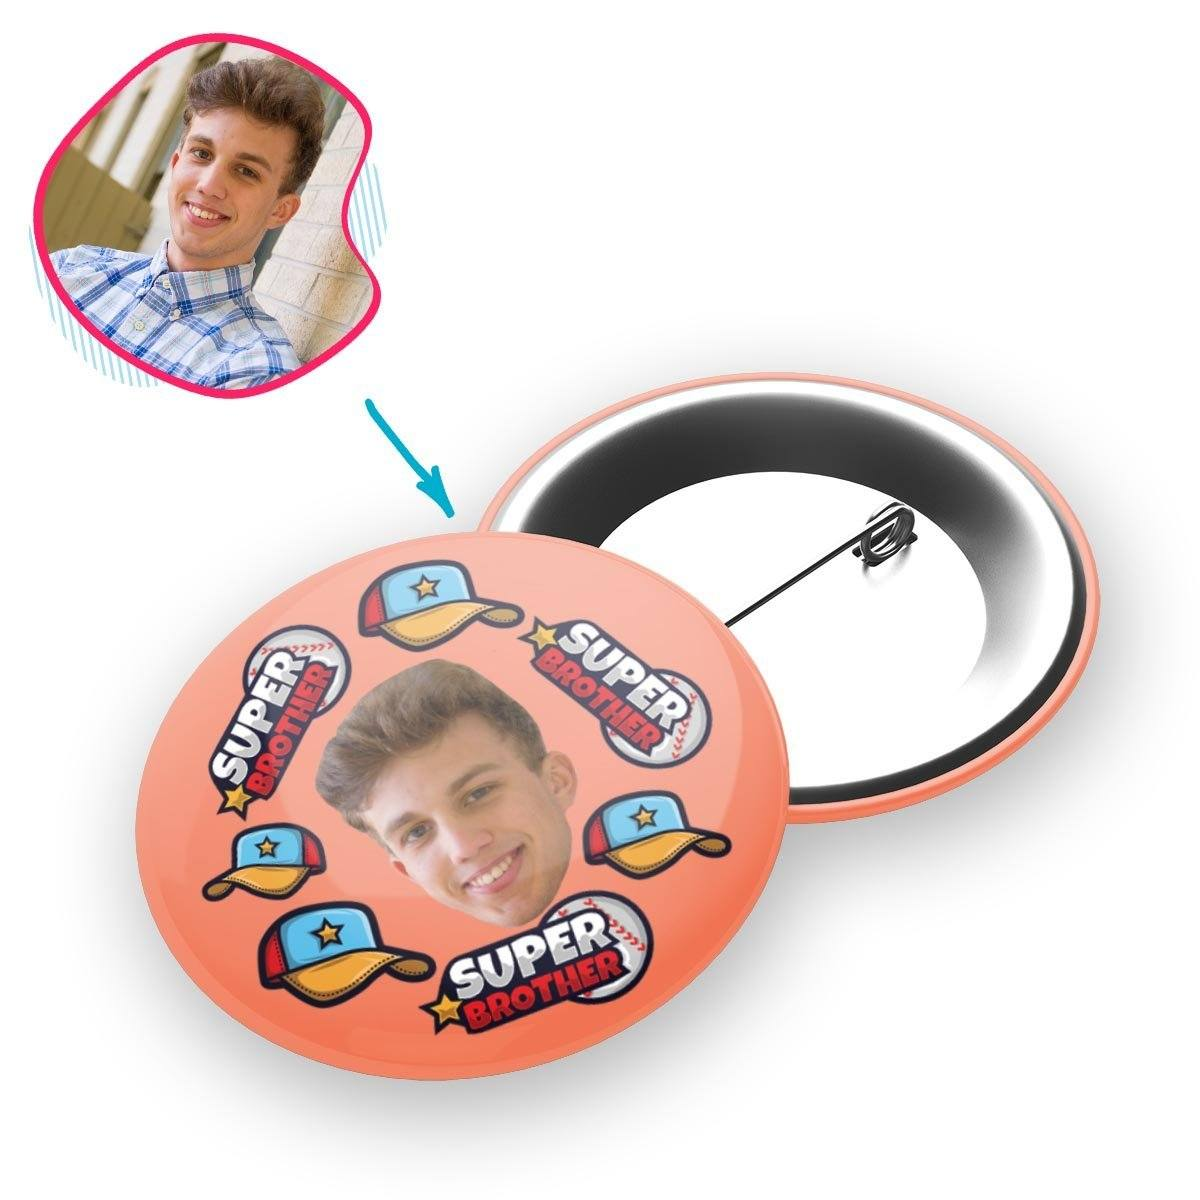 salmon Super Brother pin personalized with photo of face printed on it